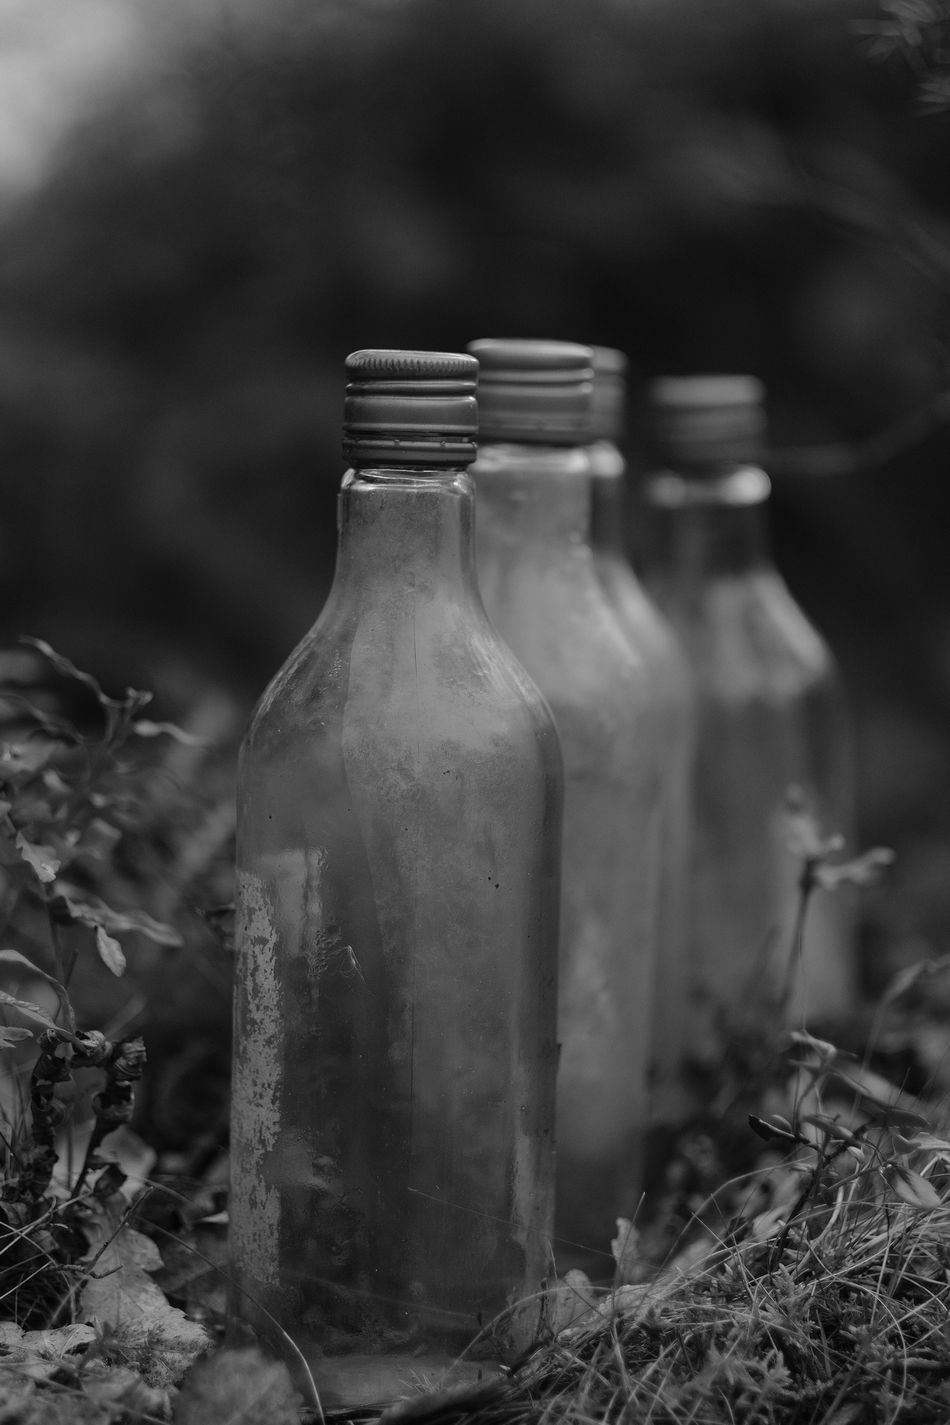 Need a drink? No People X-PRO2 XF56mmAPD Taking Photos Fujifilm_xseries Eyeem Sweden Monochrome Outdoors Empty Bottles Tomma Flaskor Eyeem Monochrome Blackandwhite Svartvitt Empty Sweden Kungshamn AcroS Fujifilm X-pro2 Sverige Fujilove Enjoying Life Liquor Sprit Segedahl Black&white